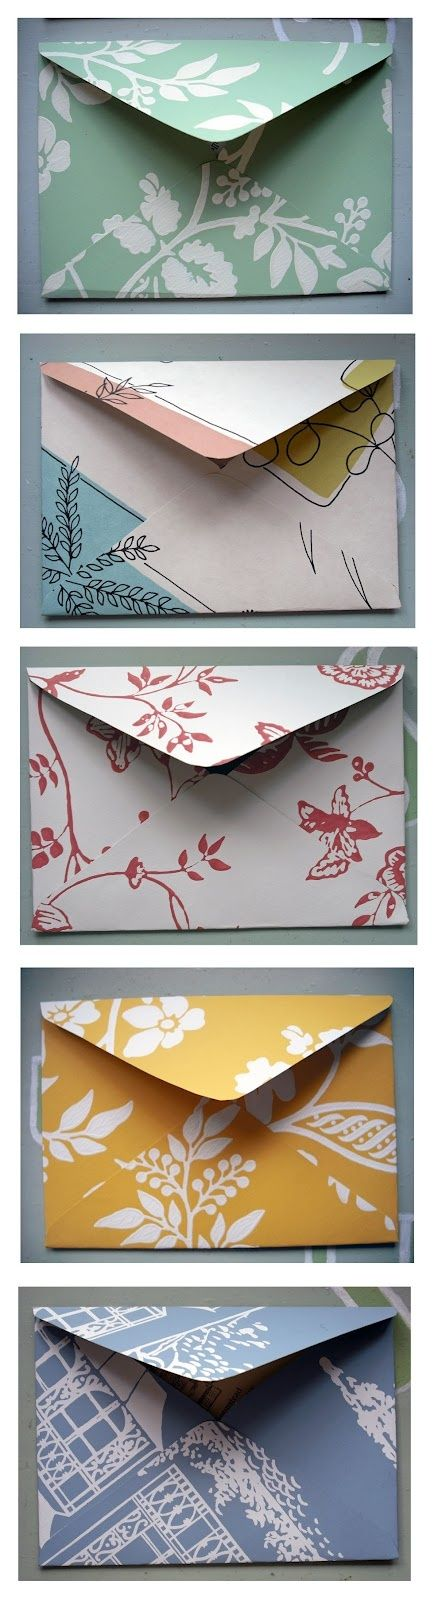 awesome pics: How to make envelopes from scrapbook paper